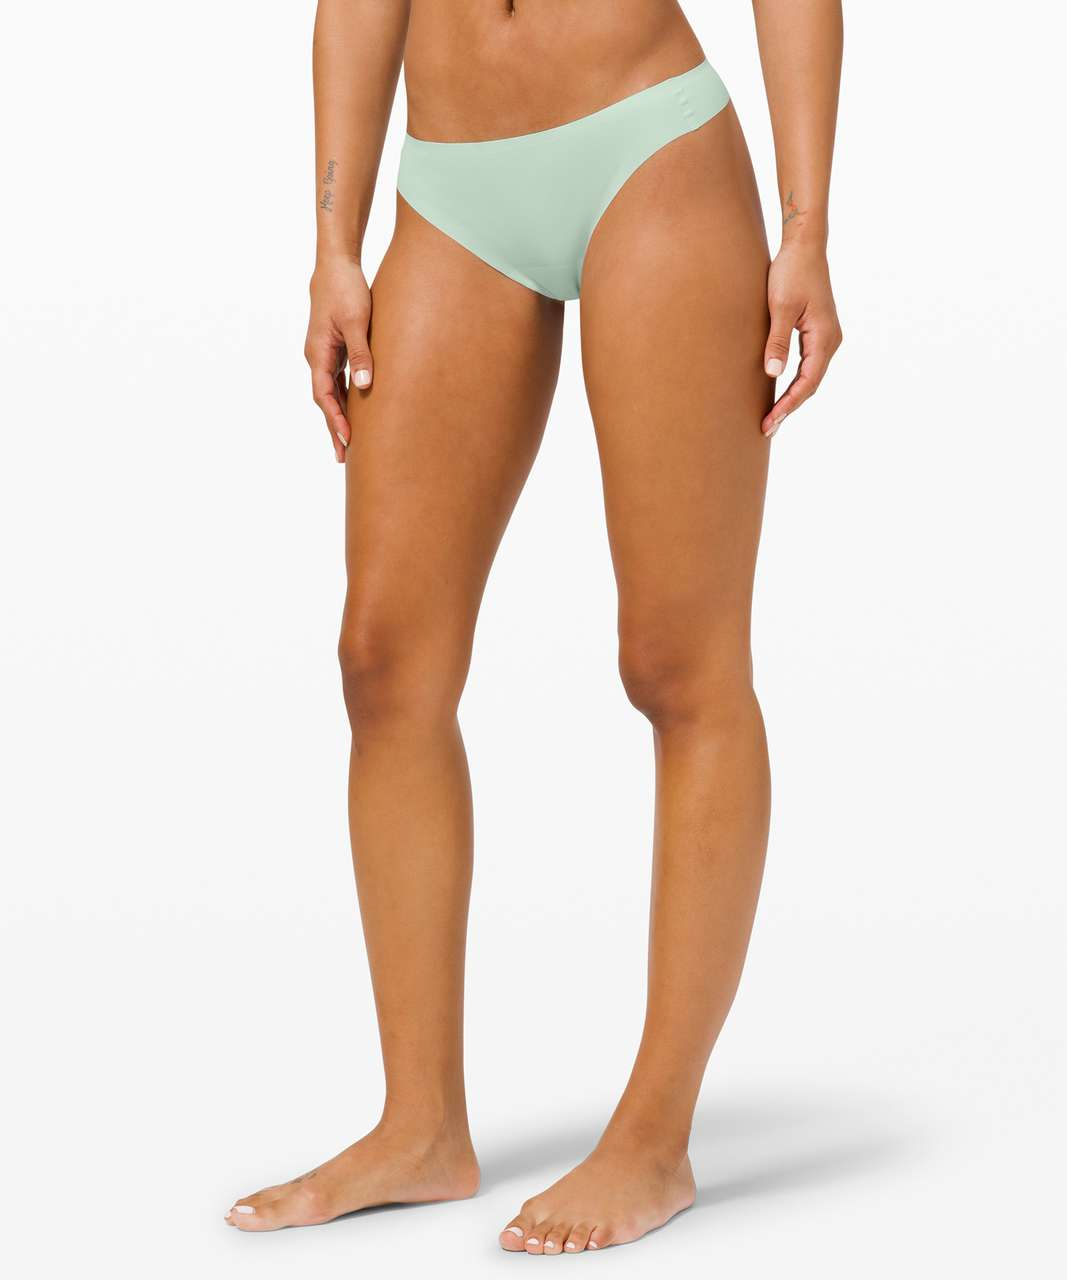 Lululemon Smooth Seamless Thong *3 Pack - Collage Camo Mini Serene Blue Multi Rotated 90 / Delicate Mint / Pink Pastel